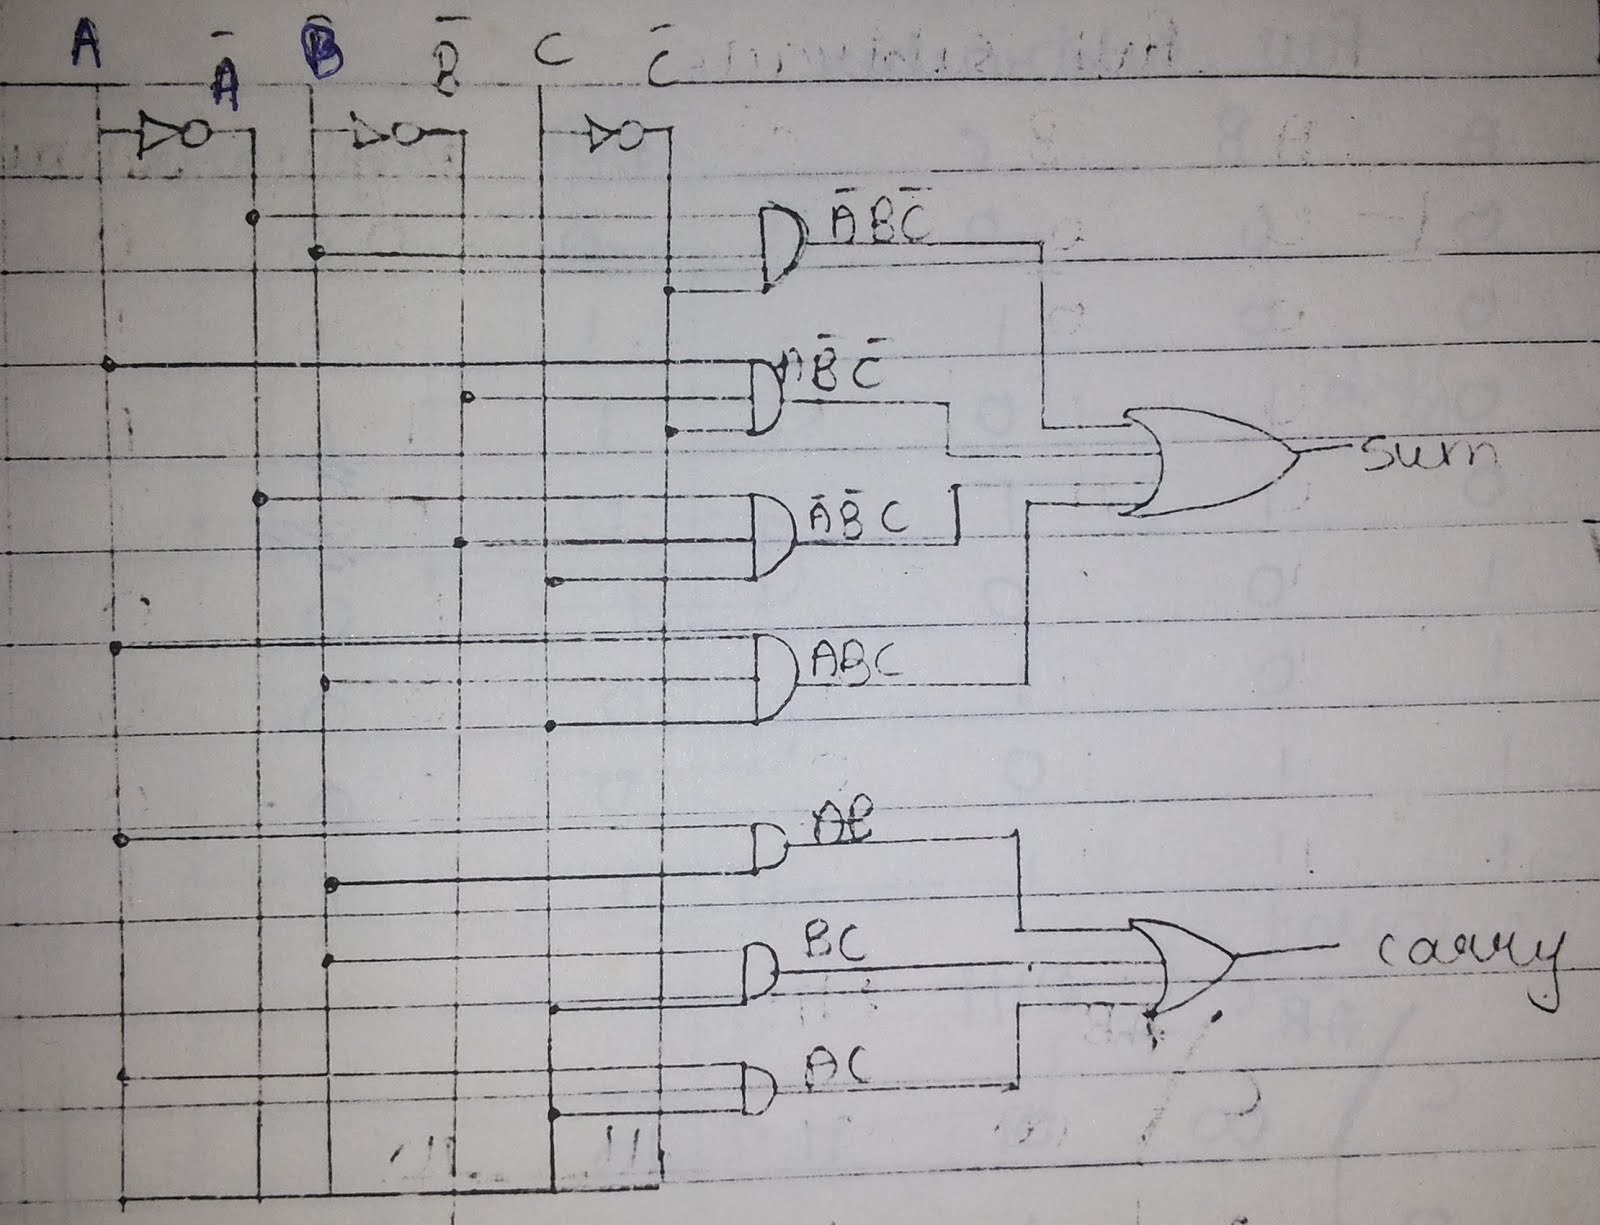 Full Adder Logic Diagram Best Secret Wiring 2 Bit Basic Digital Techniques Applications Part 5 U0905 U0902 U092c U091c U094d U091e Using Two Half 4